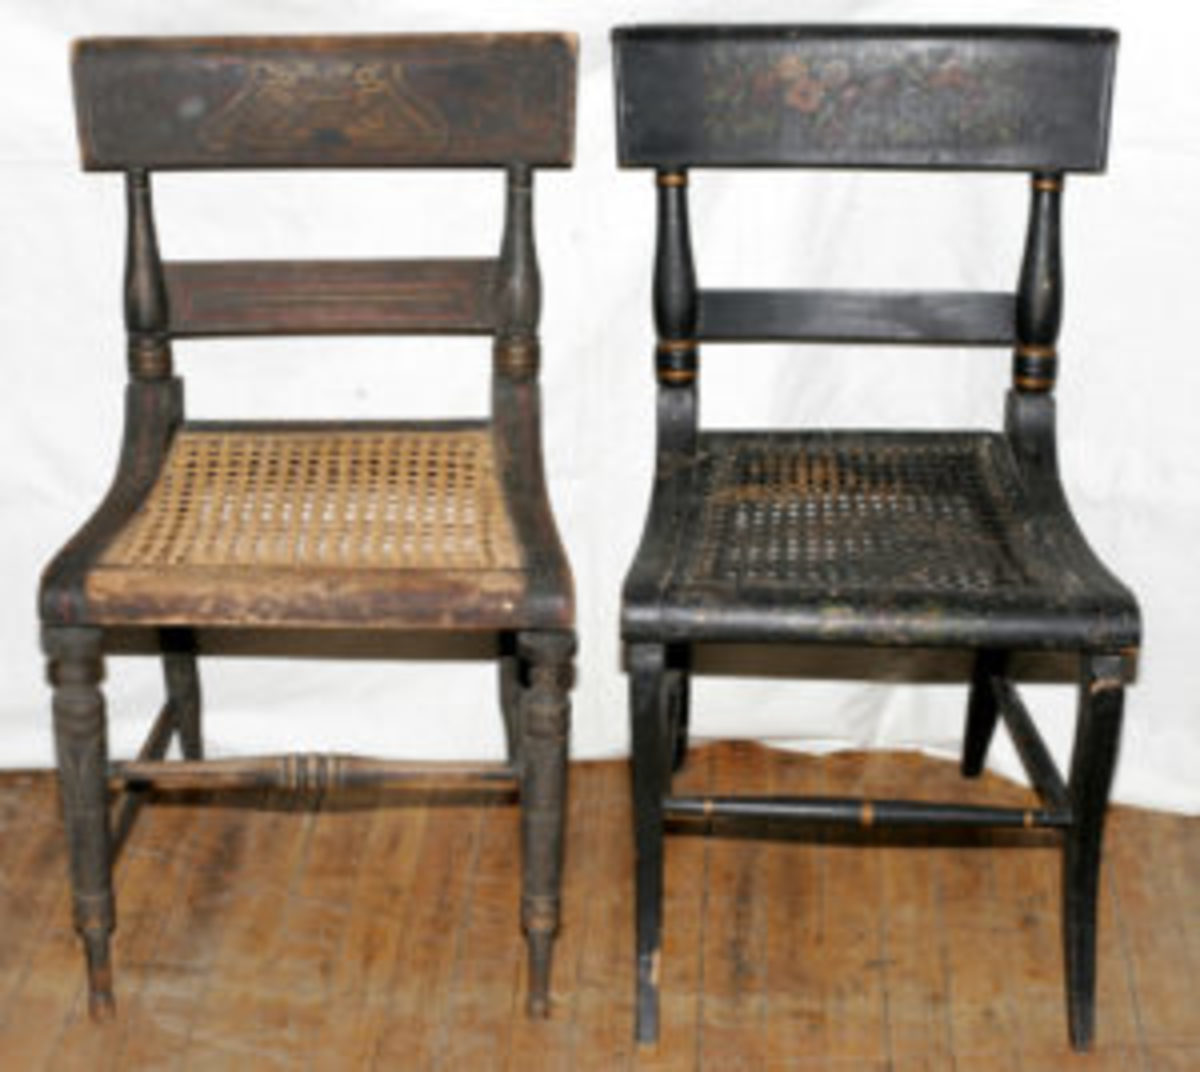 These two period Hitchcock chairs from the 1830s are factory made. Image courtesy of liveAuctioneers/DuMouchelles